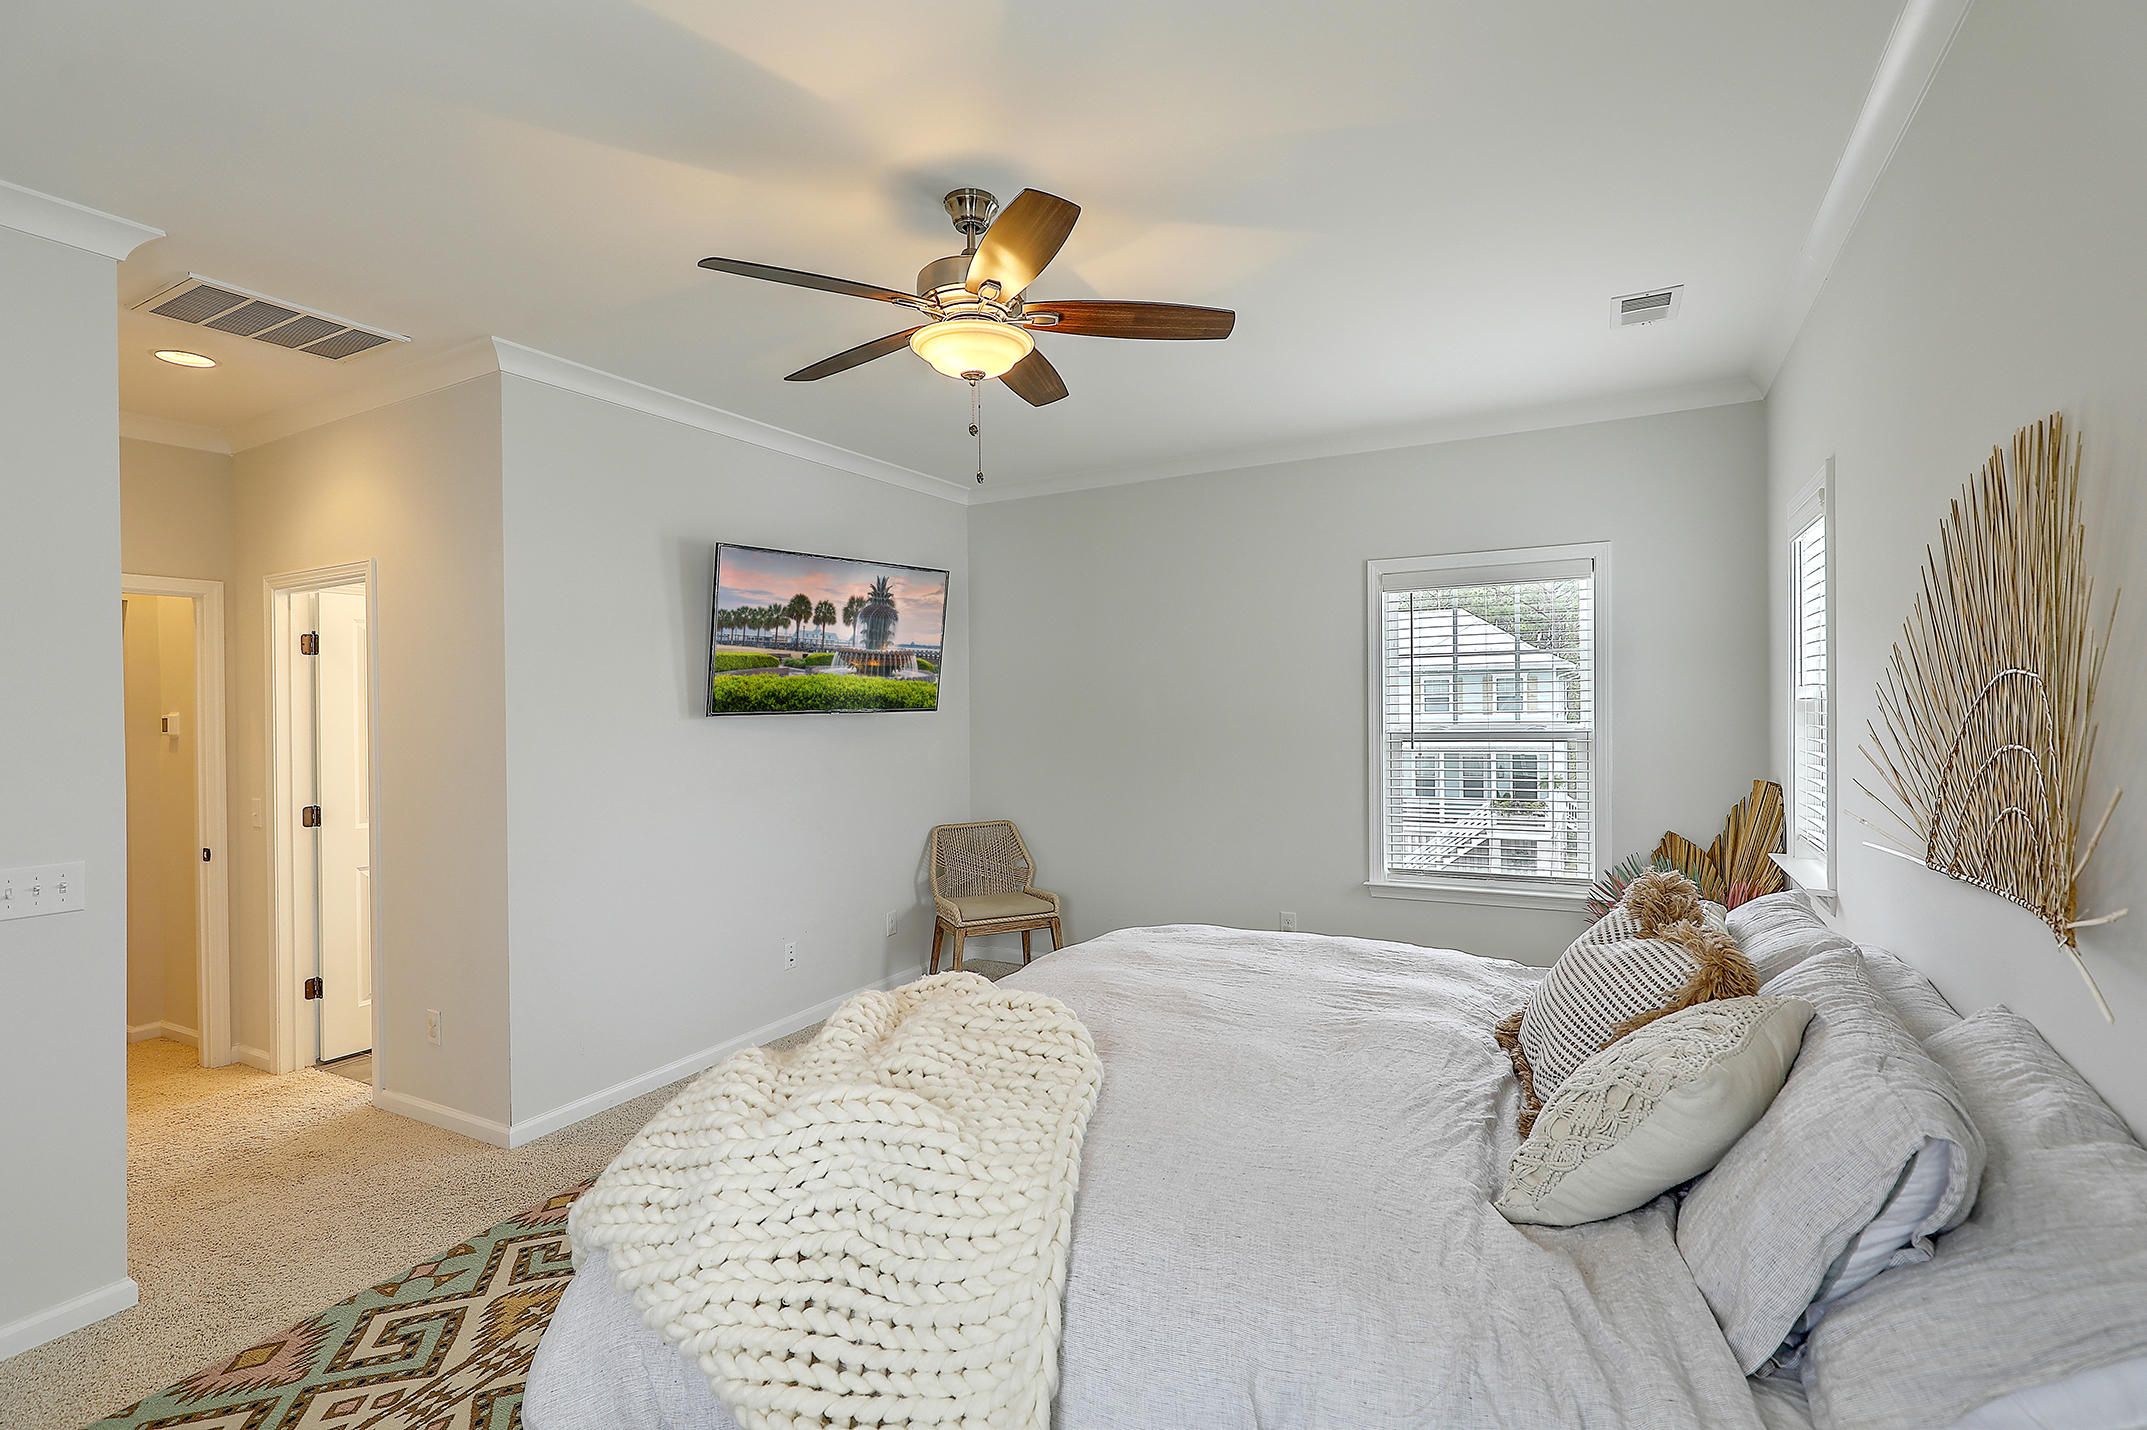 Stratton by the Sound Homes For Sale - 3473 Saltflat, Mount Pleasant, SC - 33